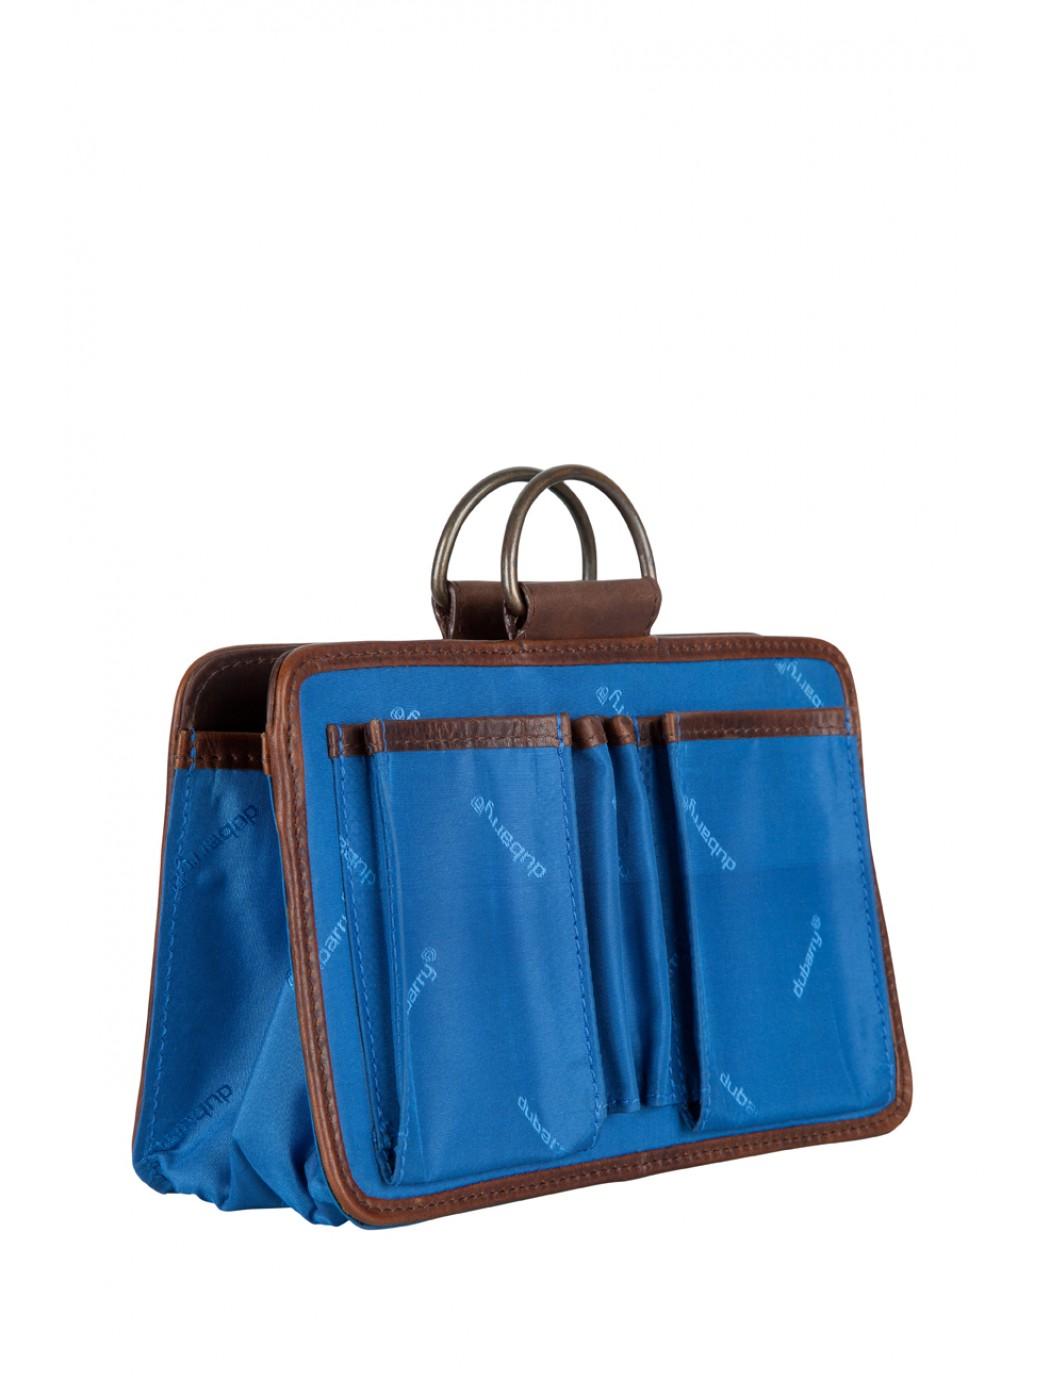 athenry-bag-organiser-dubarry-1